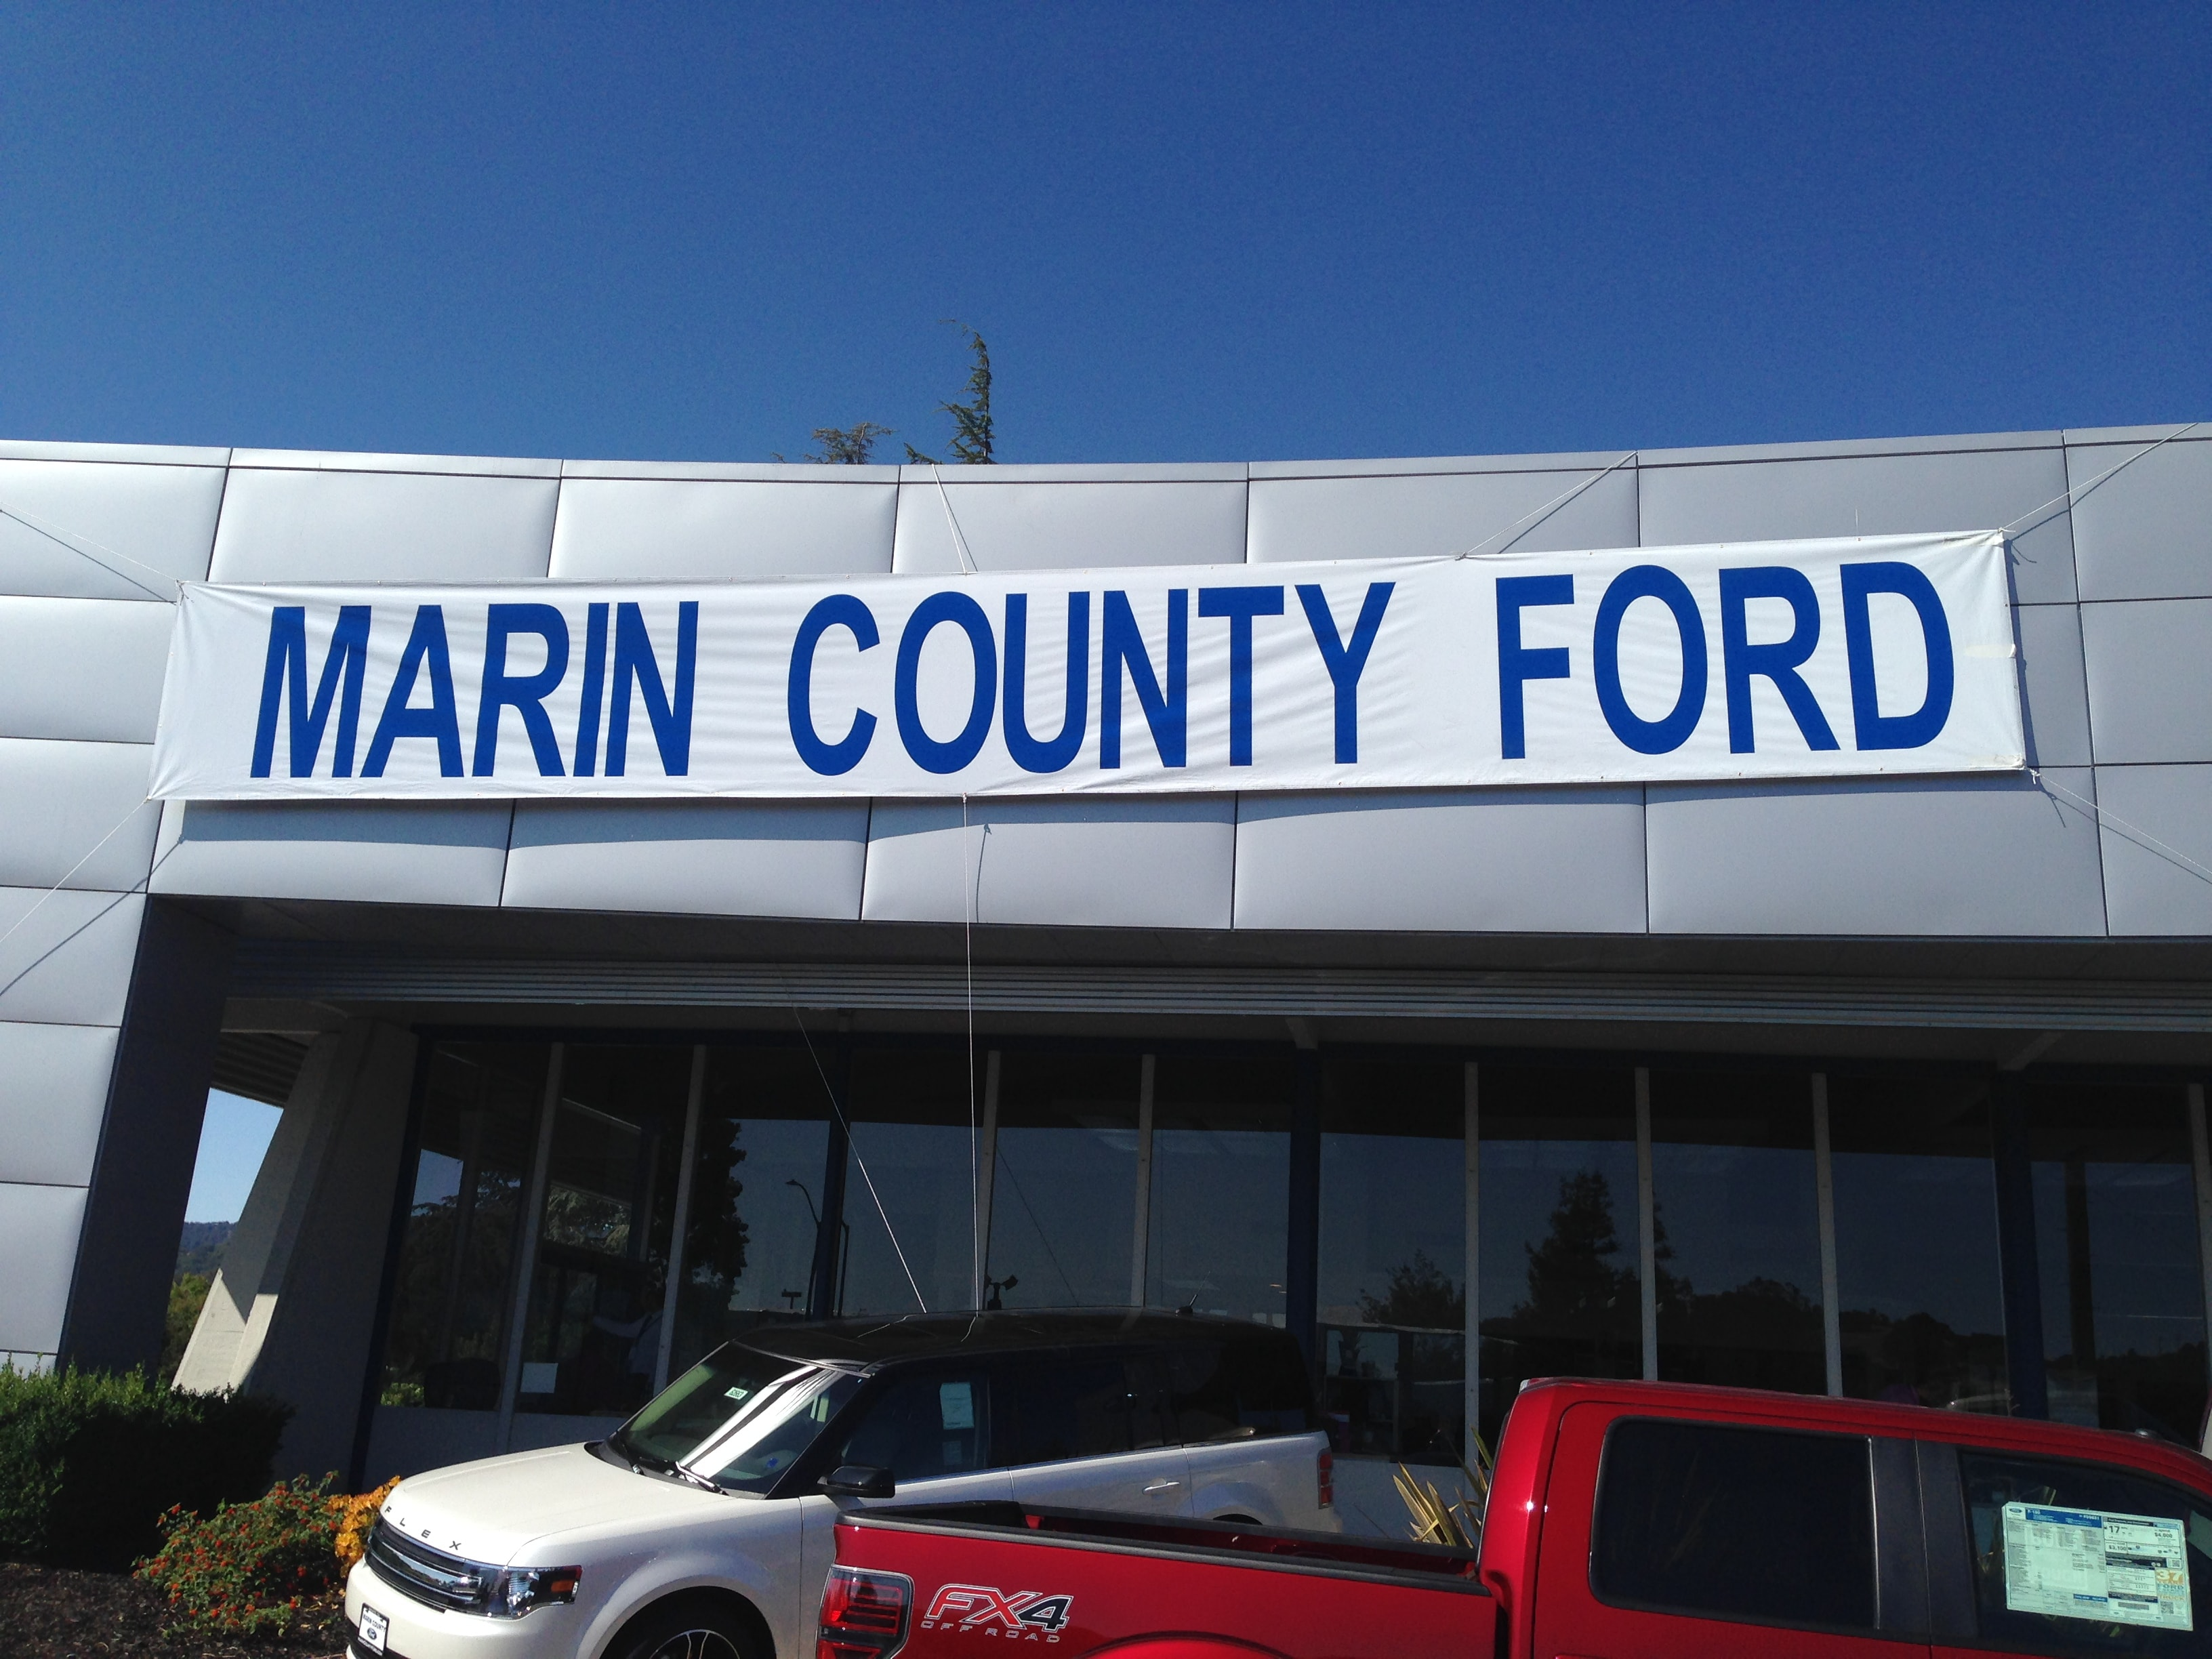 Marin County Ford serves the San Francisco SF Bay CA Area